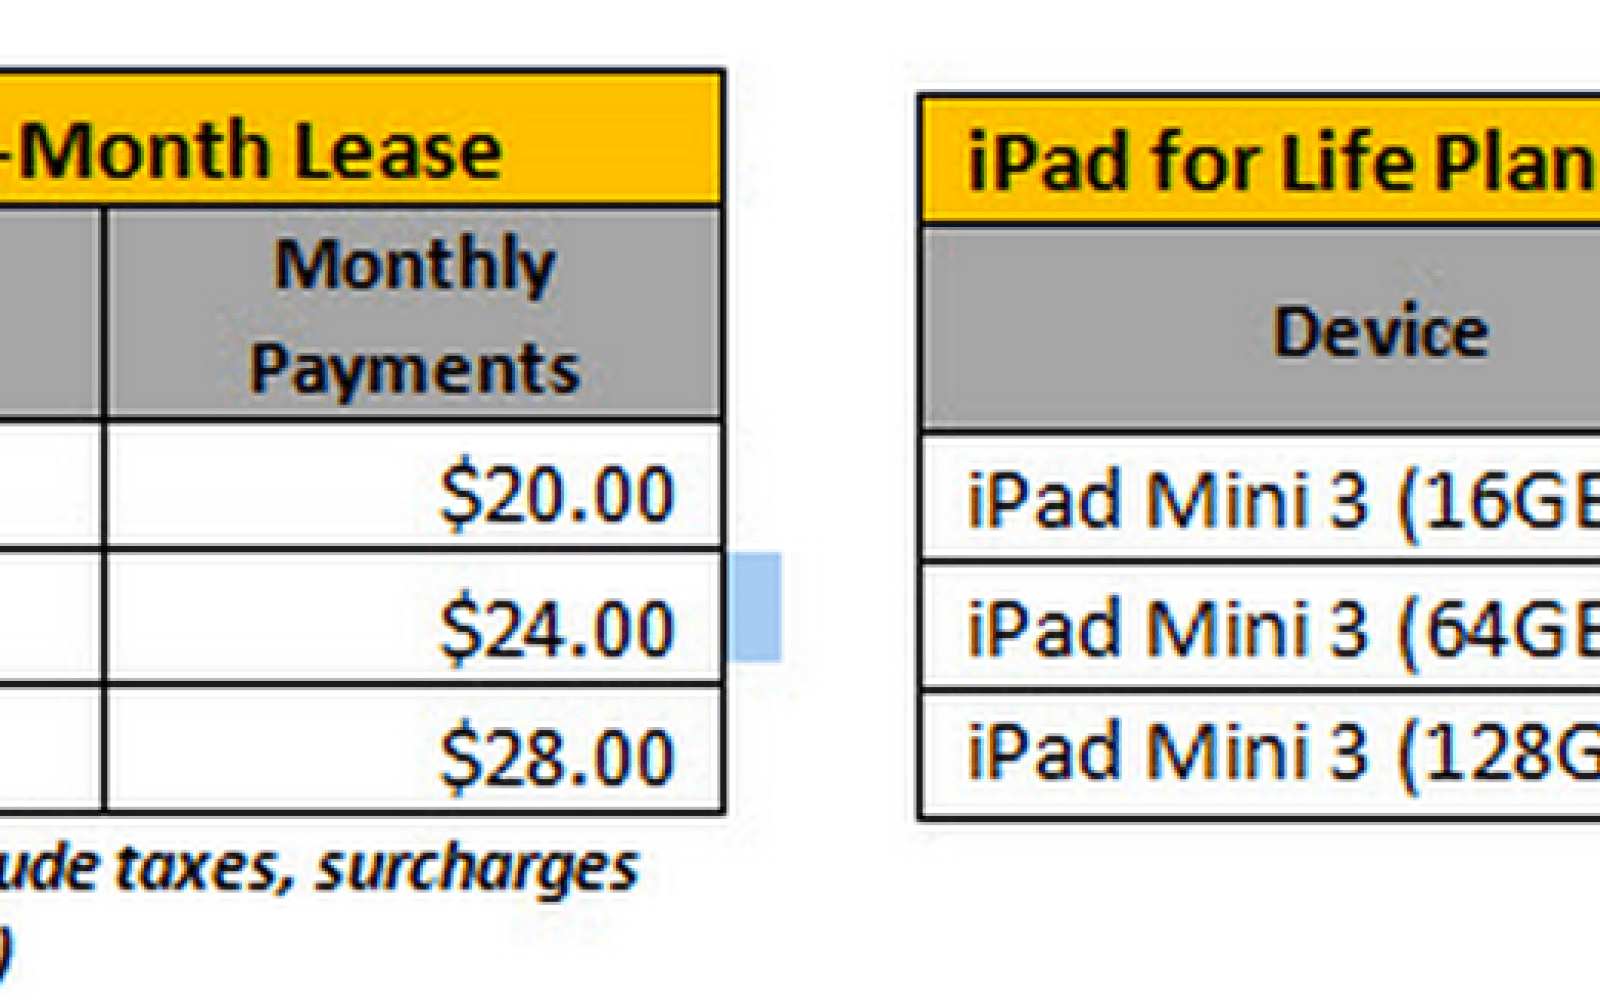 Sprint announces 'iPad for Life' 24-month lease for iPad Air